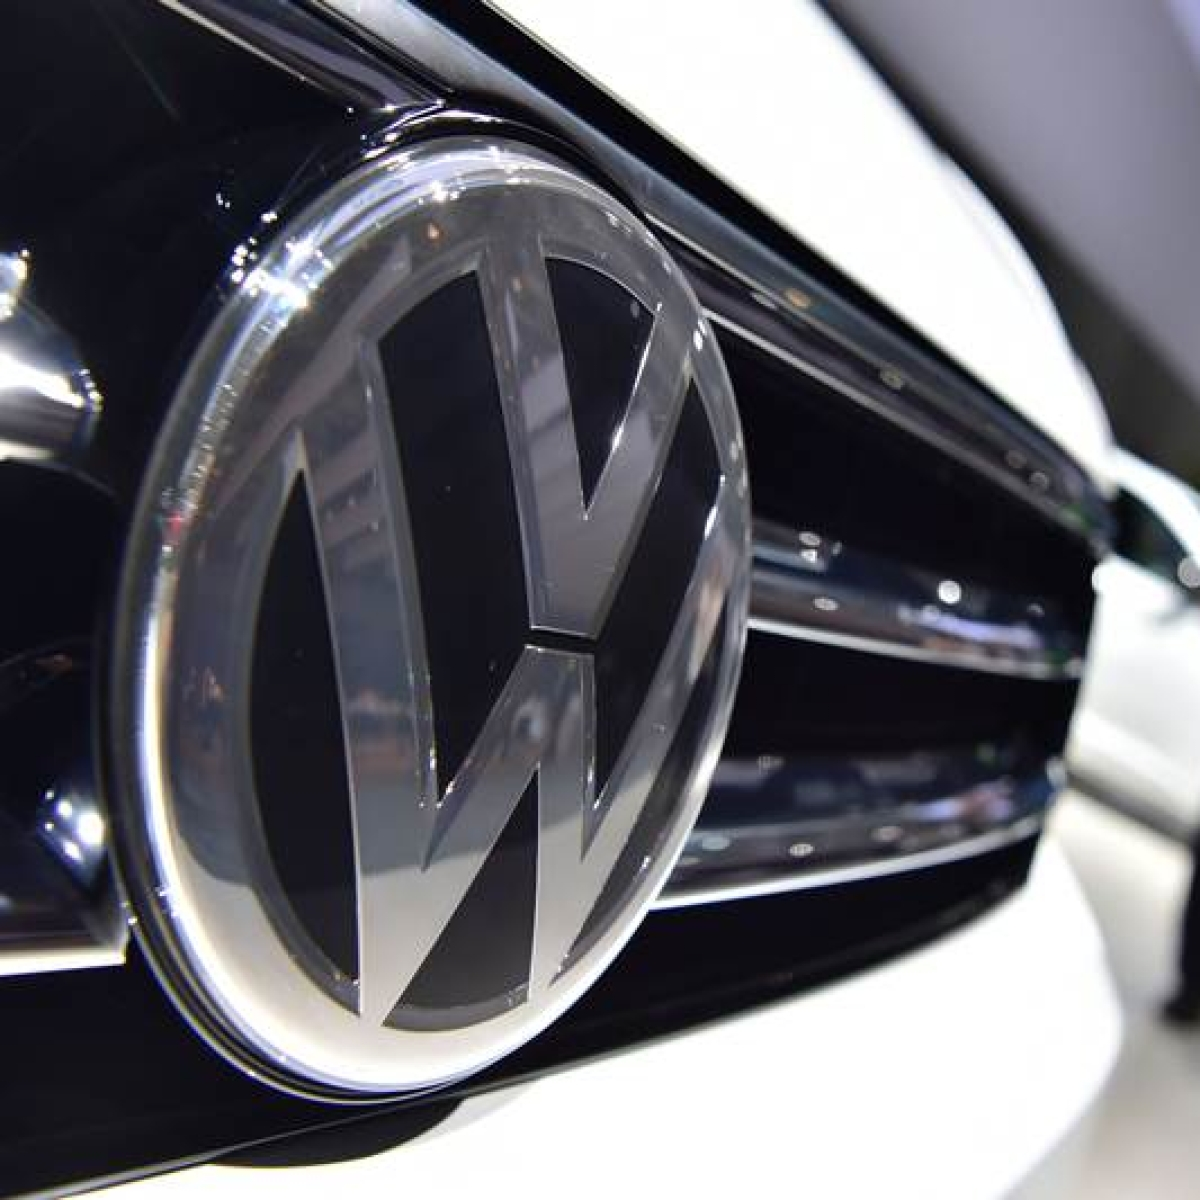 VW Group suspends operation at Pune plant for a month as slowdown bites